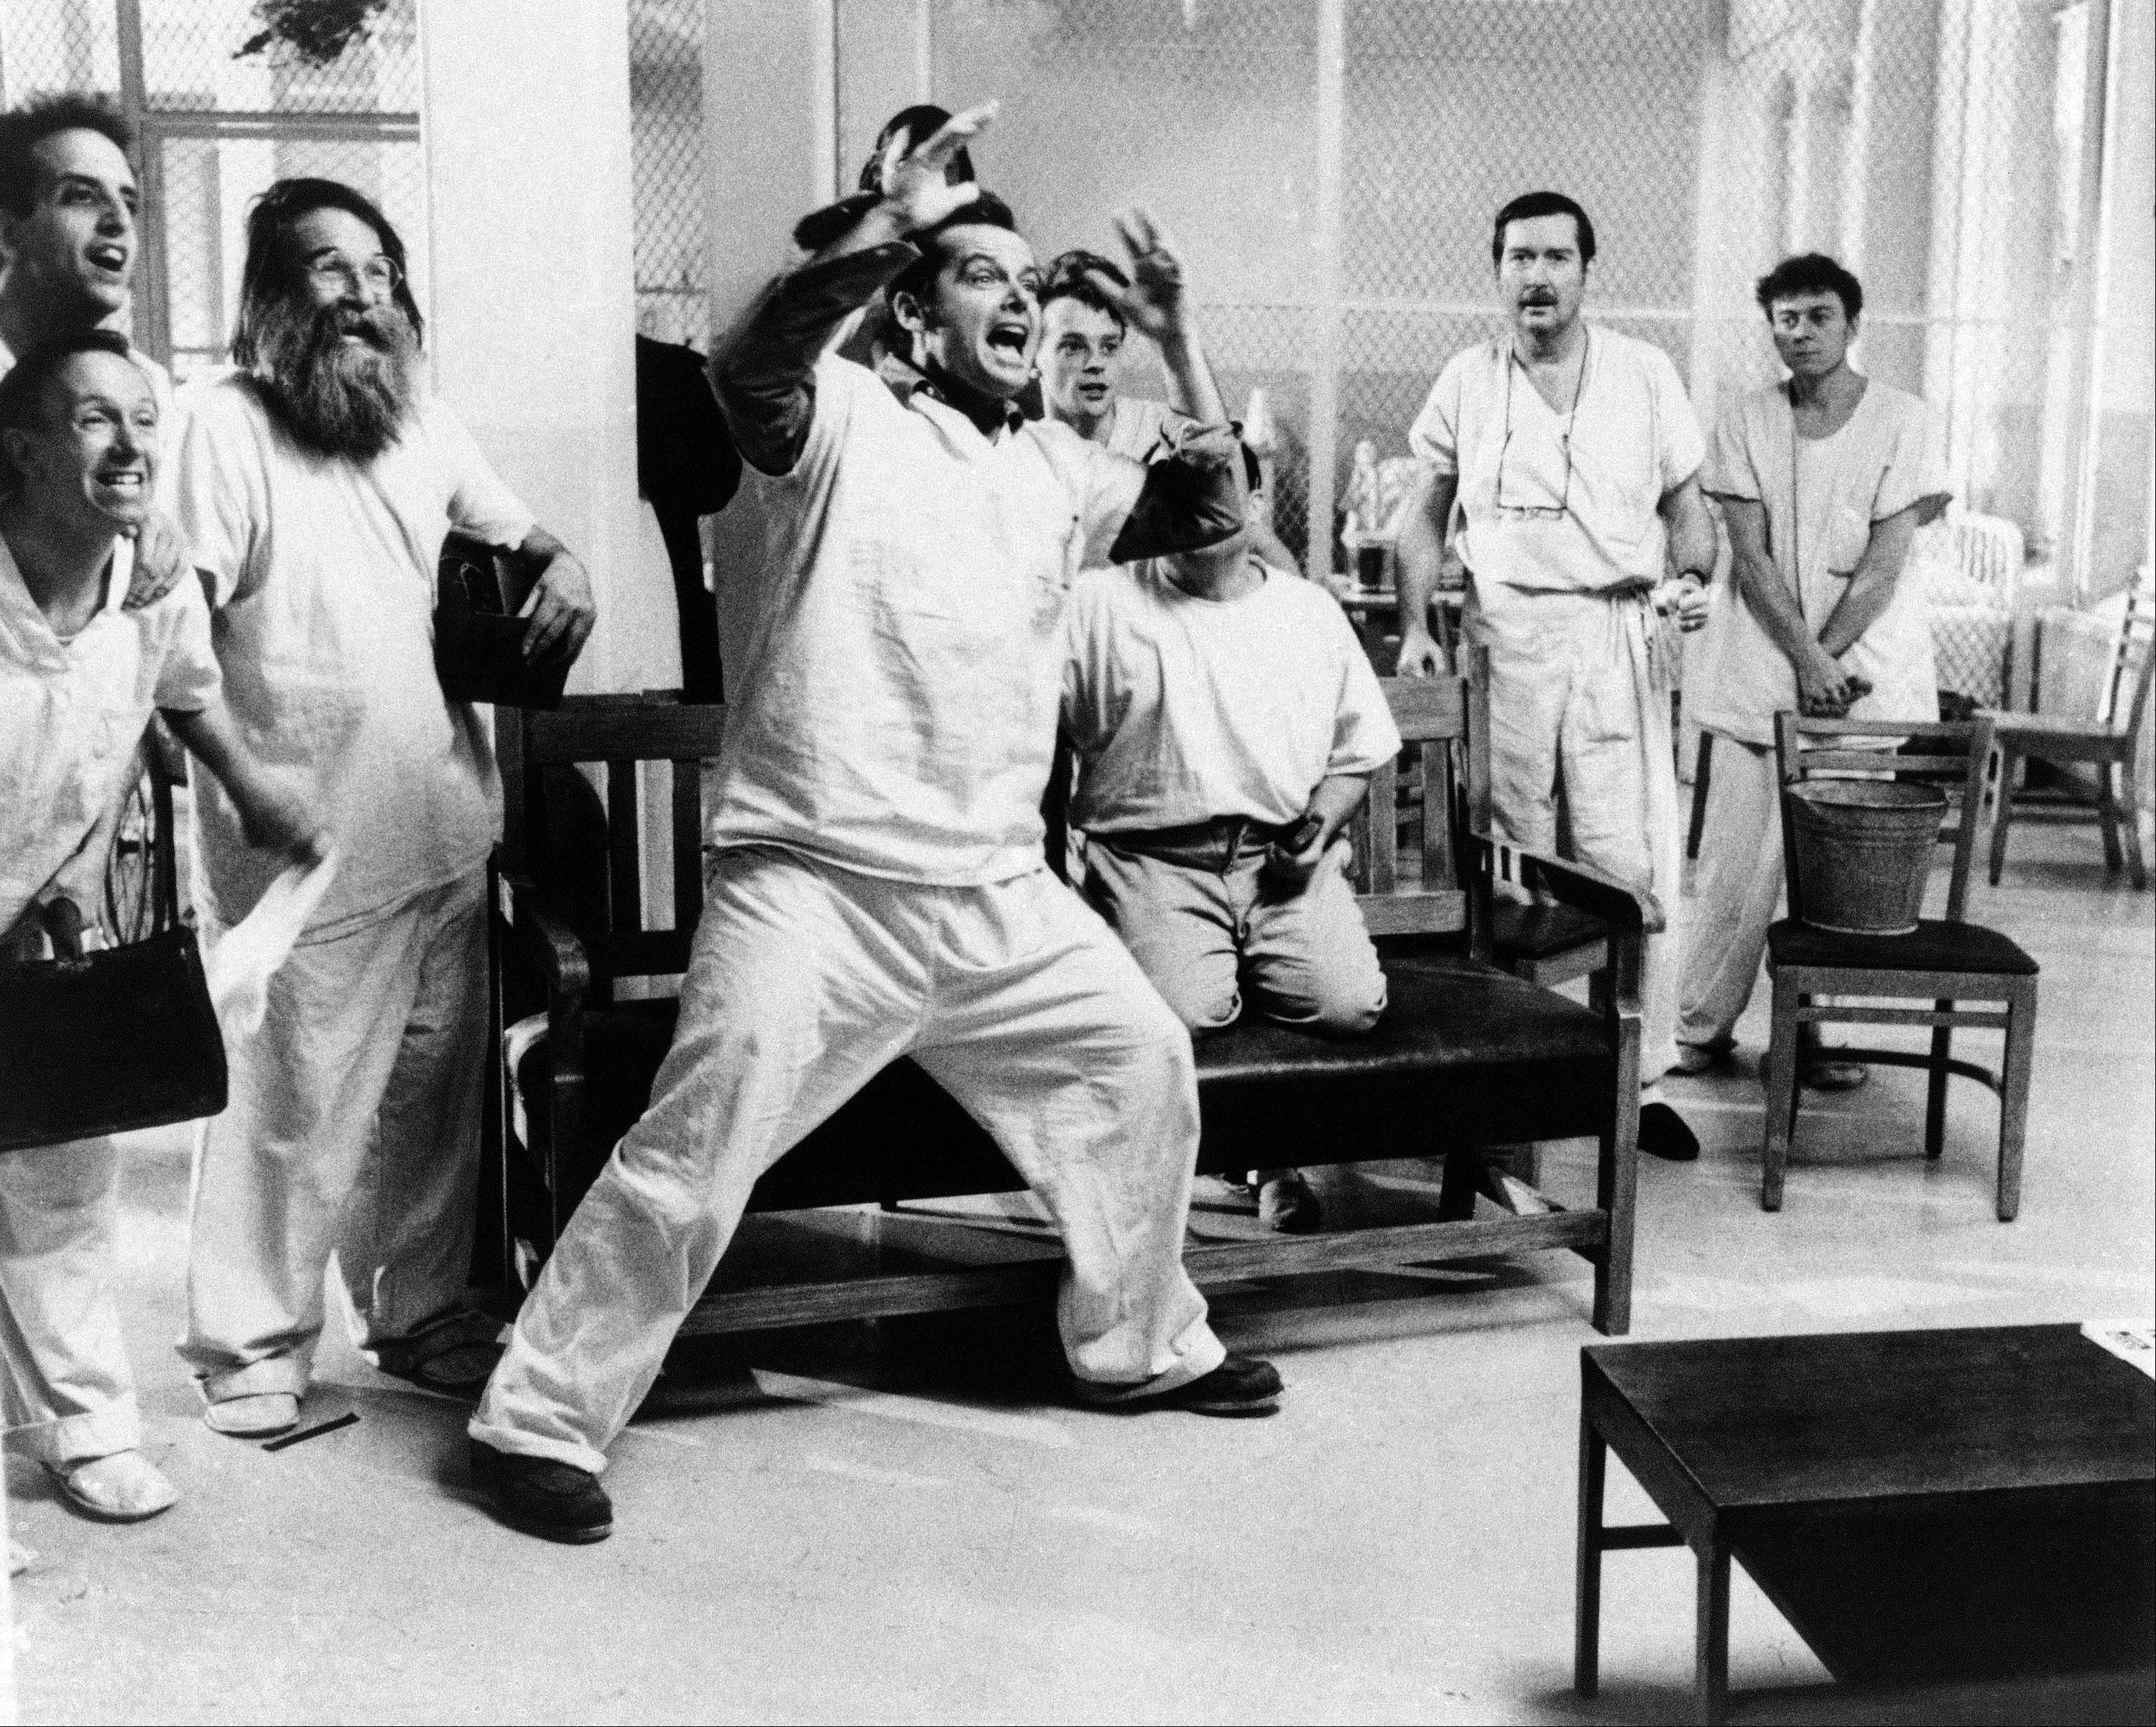 In this 1975 file photo originally released by United Artists, shows a scene from the movie �One Flew Over the Cuckoo�s Nest,� which was produced by Saul Zaentz. Zaentz, 92, died Friday in San Francisco.